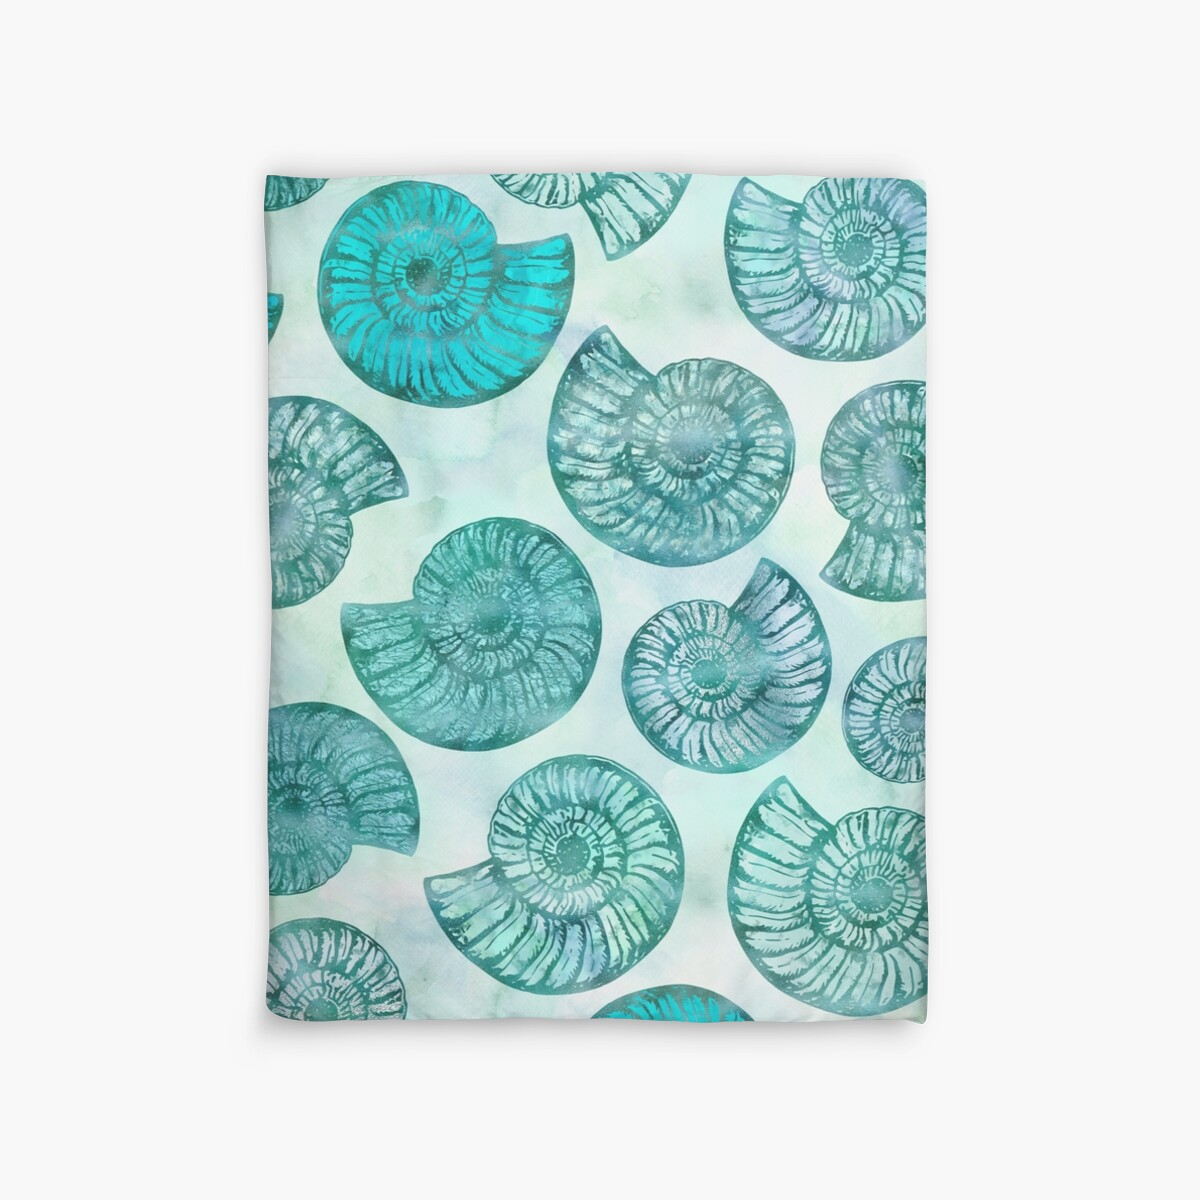 Quot Shimmering Underwater Shell Scenery In Turquoise Aqua